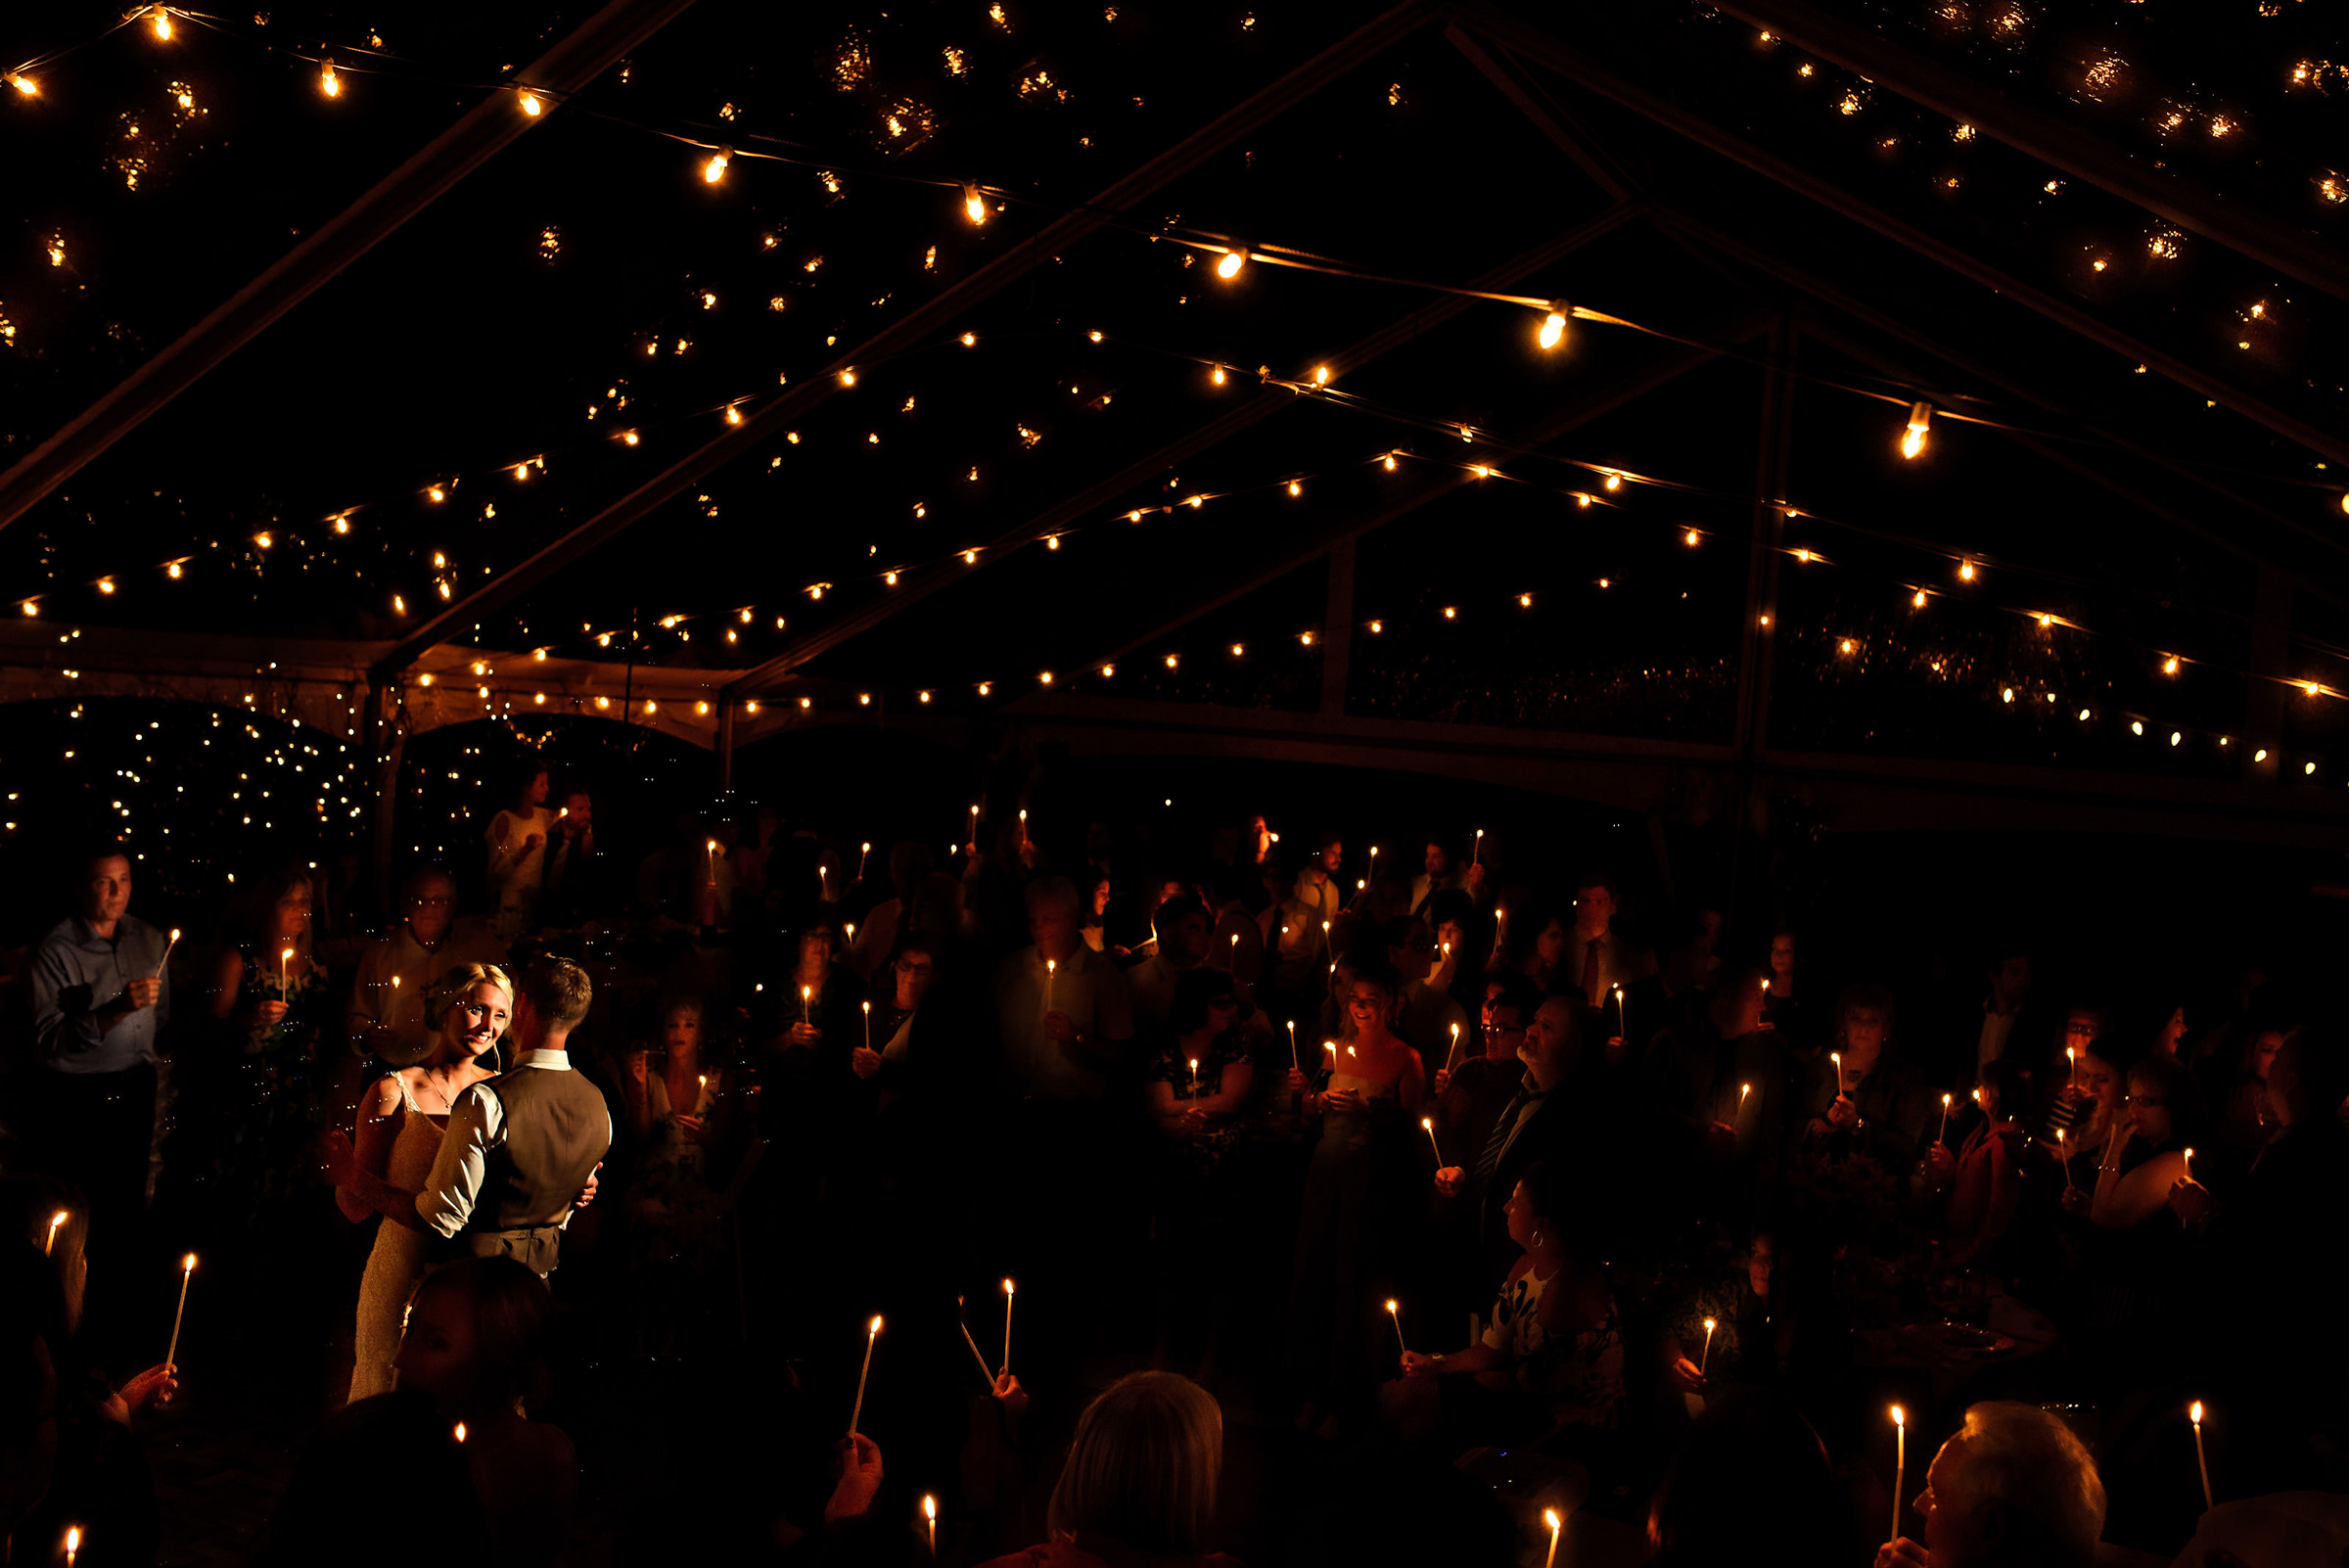 First dance lit by guests holding candles - photo by Moore Photography